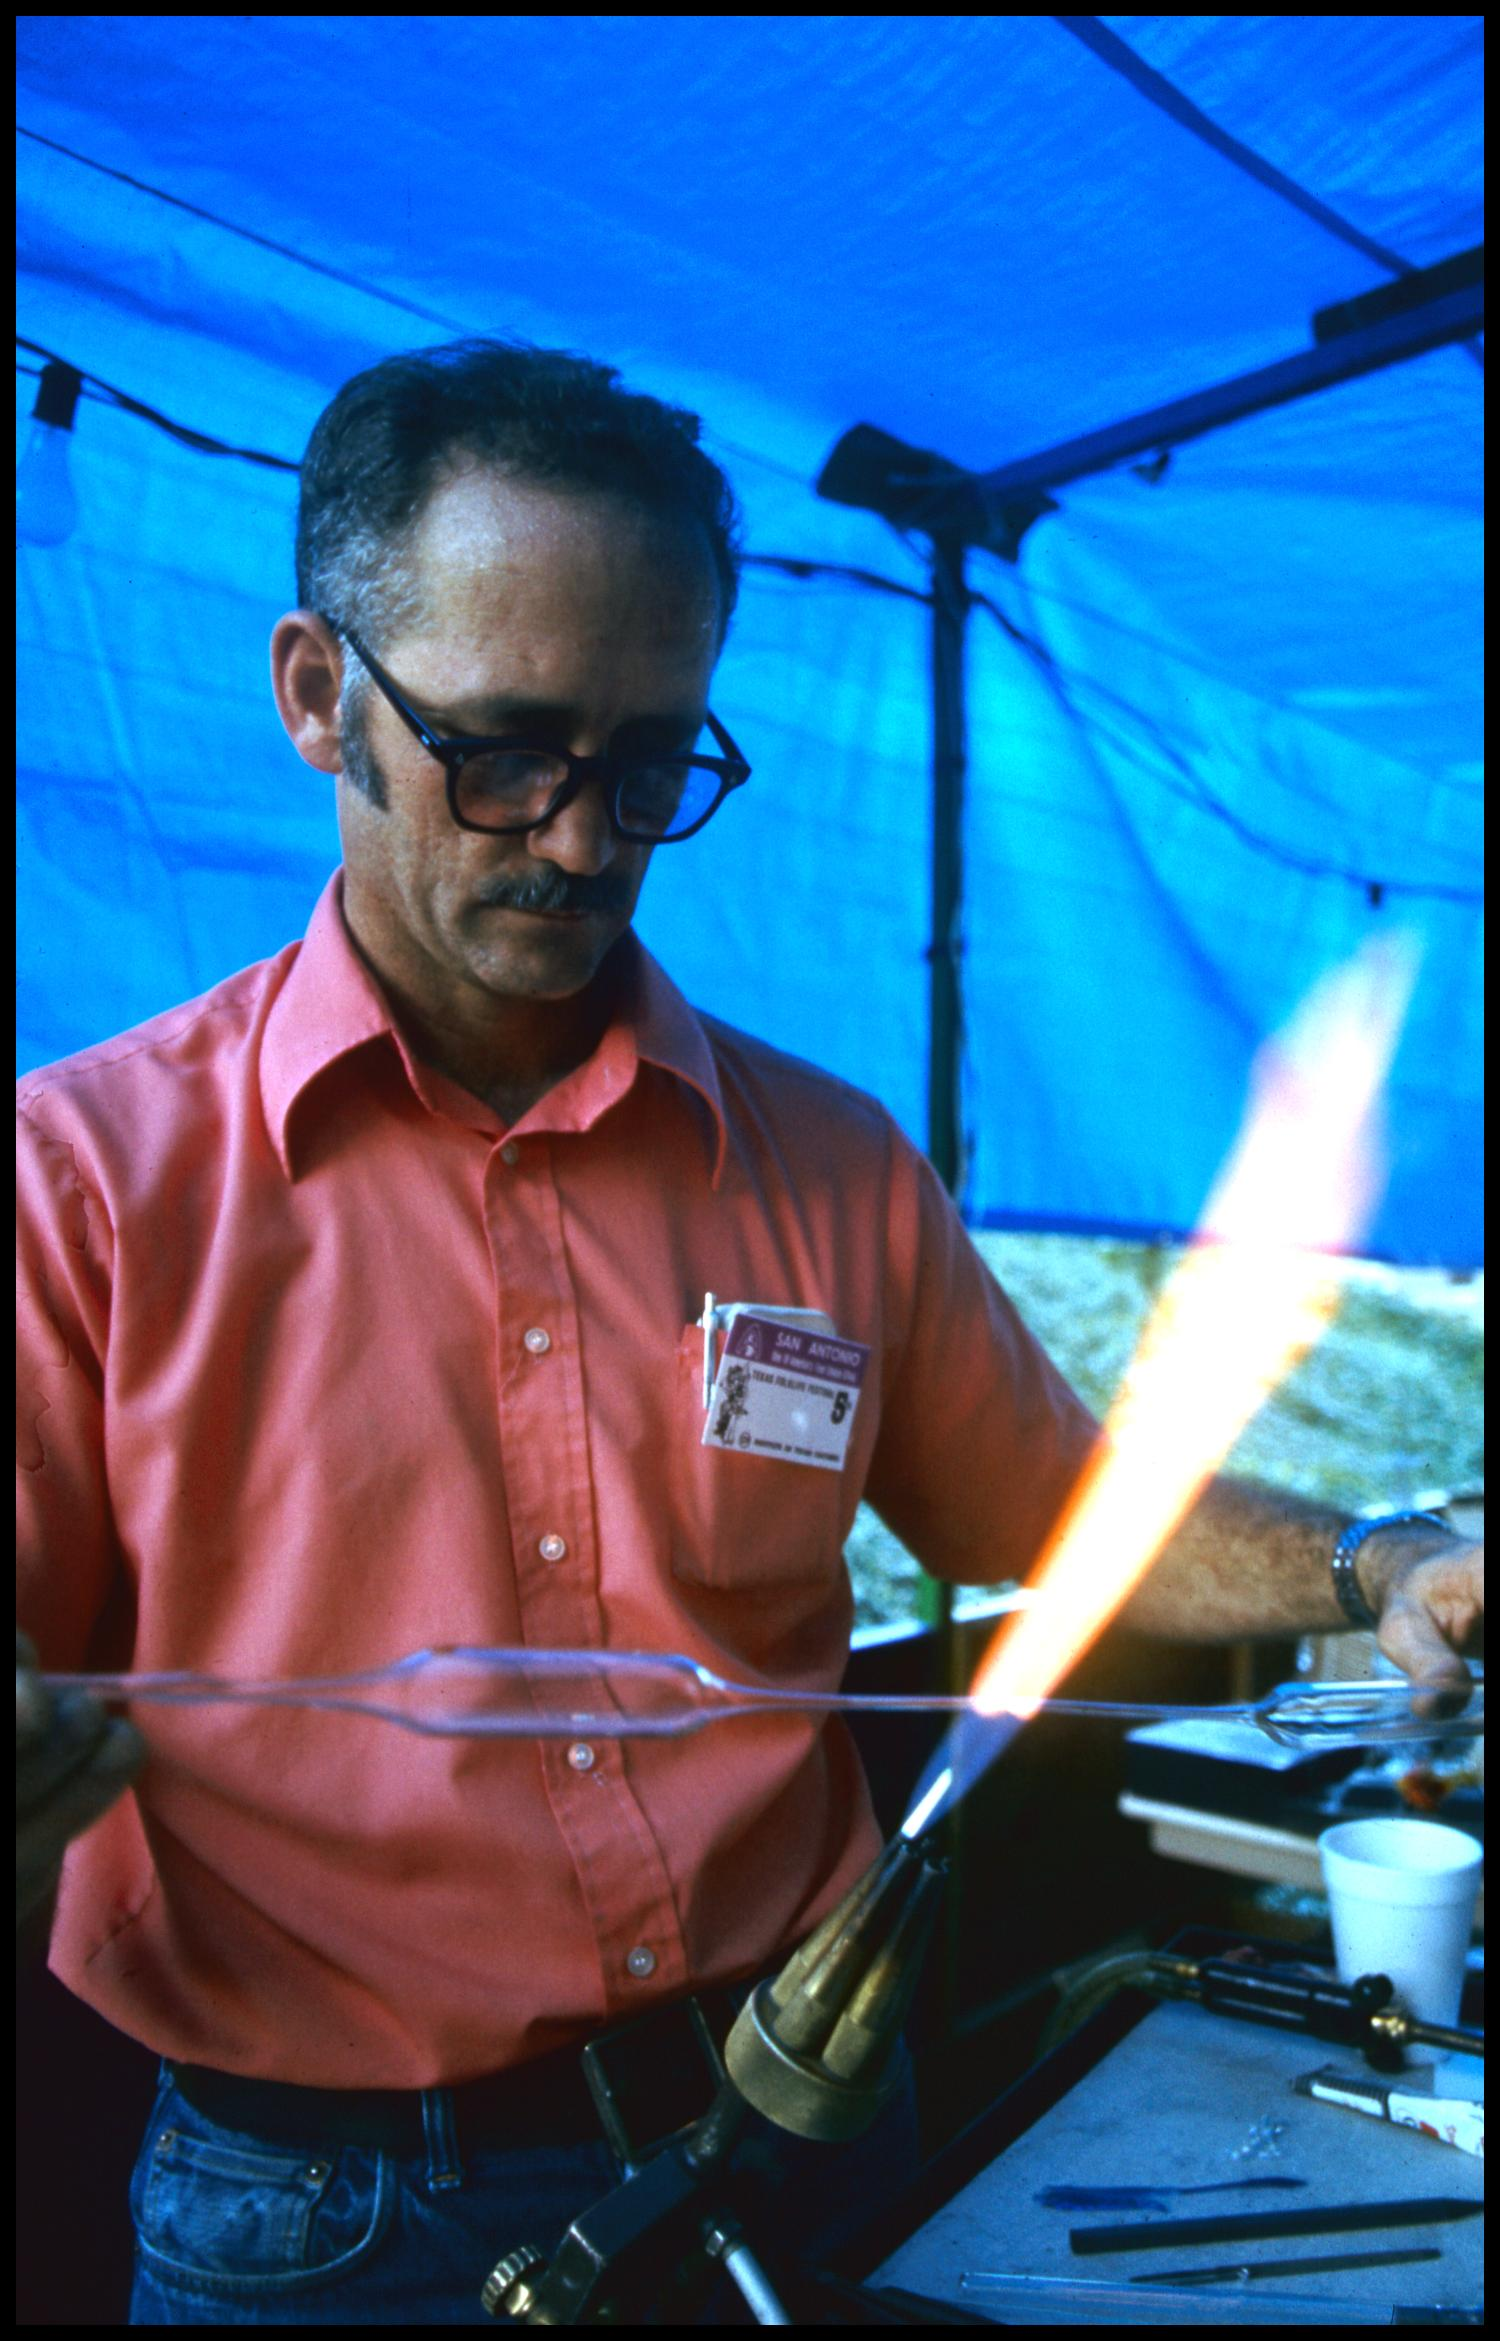 [Joe Pyle Demonstrating Glass Crafting]                                                                                                      [Sequence #]: 1 of 1